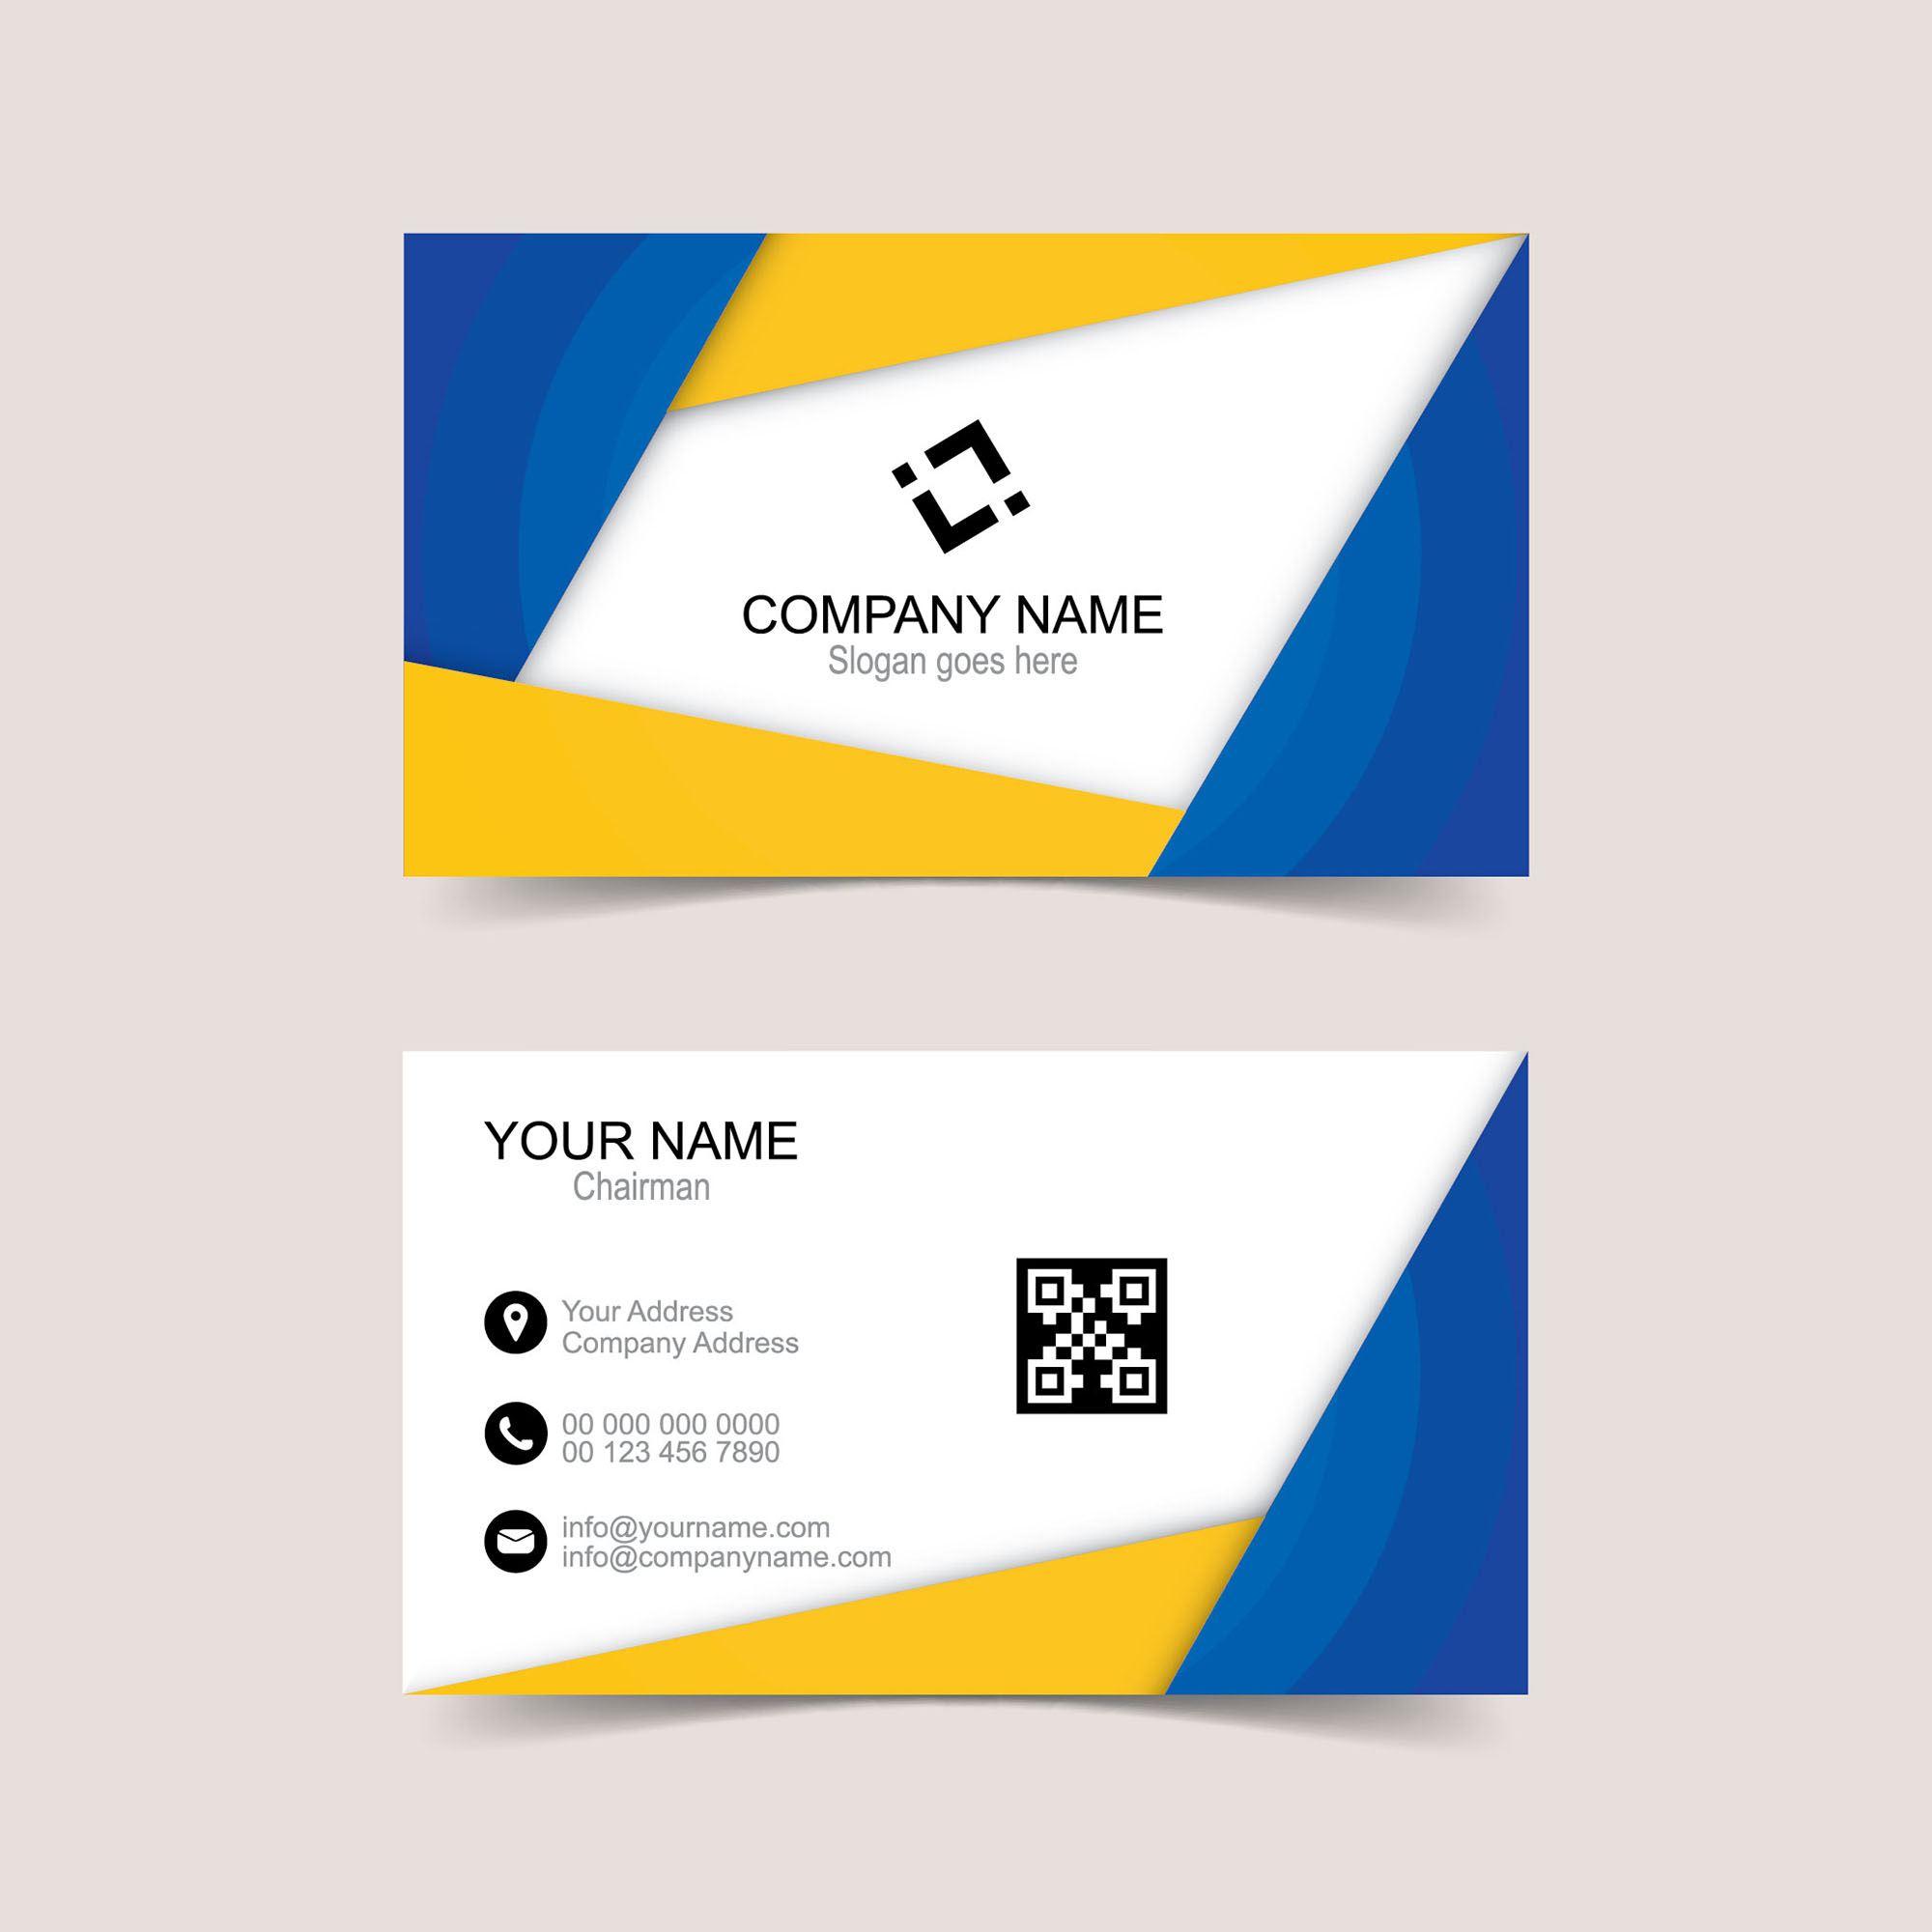 Vector creative business card template free download wisxi business card business cards business card design business card template design templates flashek Image collections